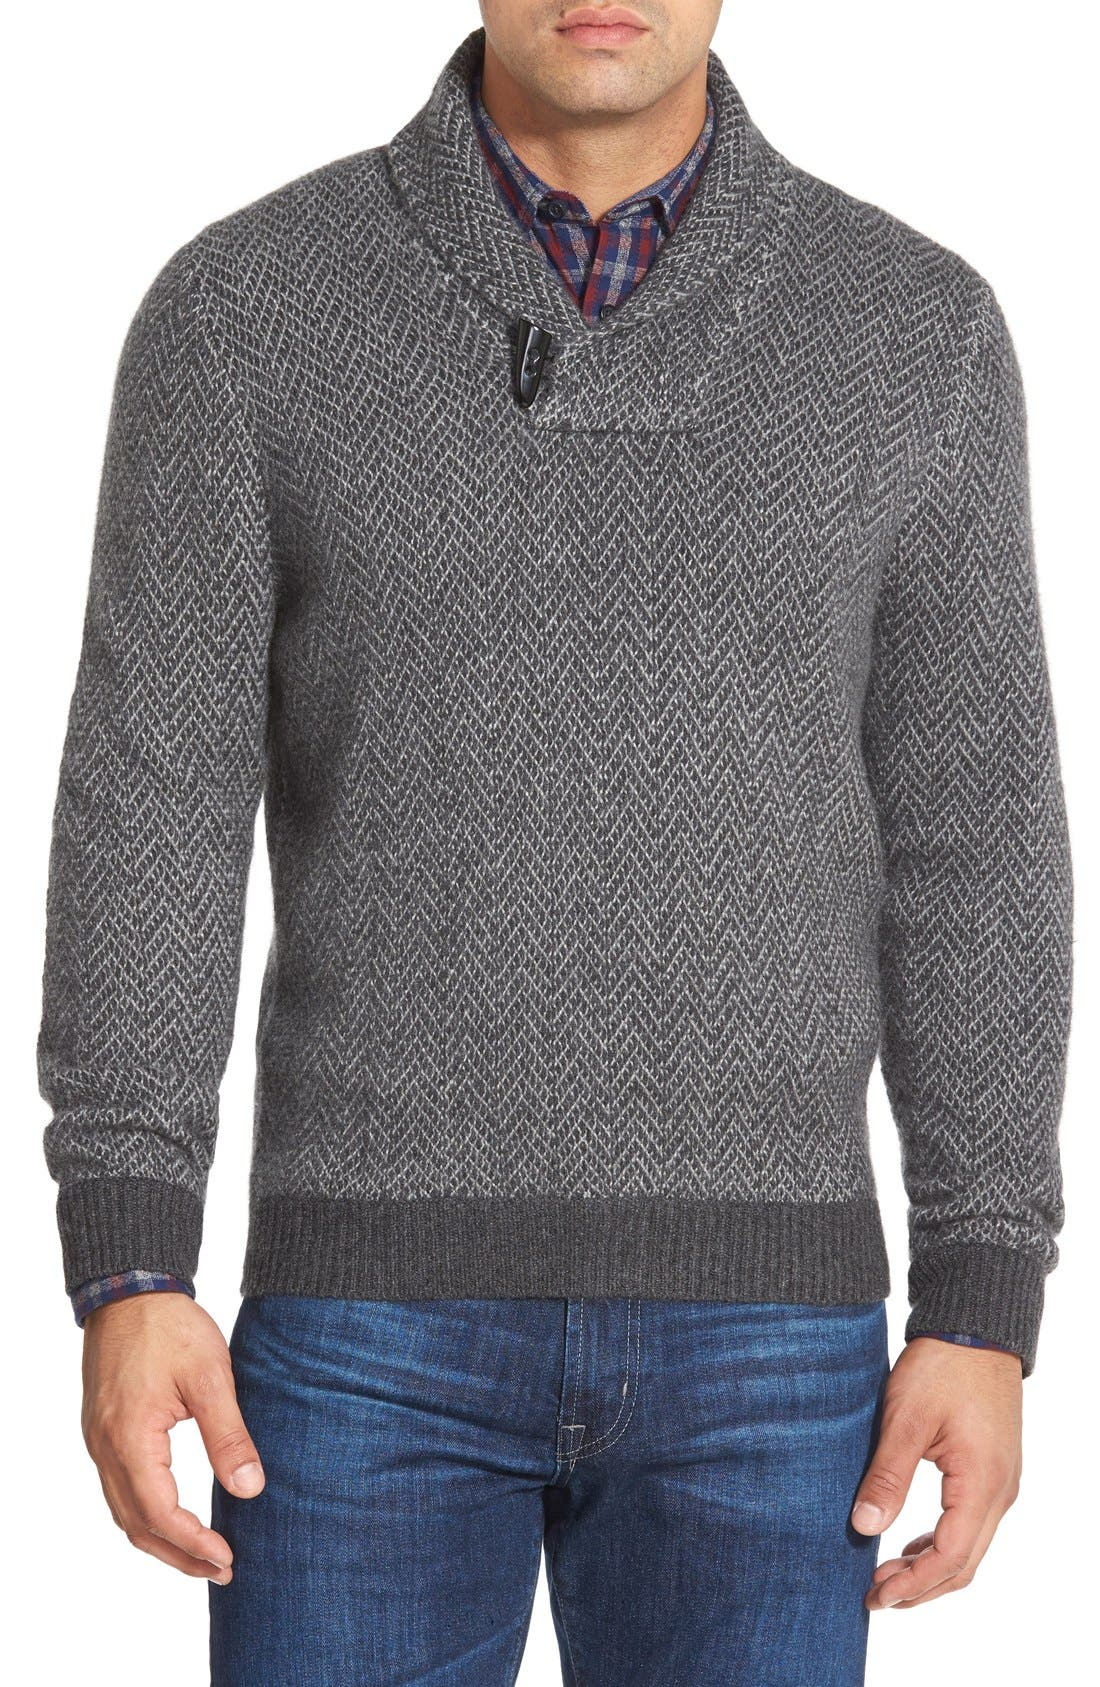 Alternate Image 1 Selected - John W. Nordstrom® Shawl Collar Cashmere Sweater (Regular & Tall)